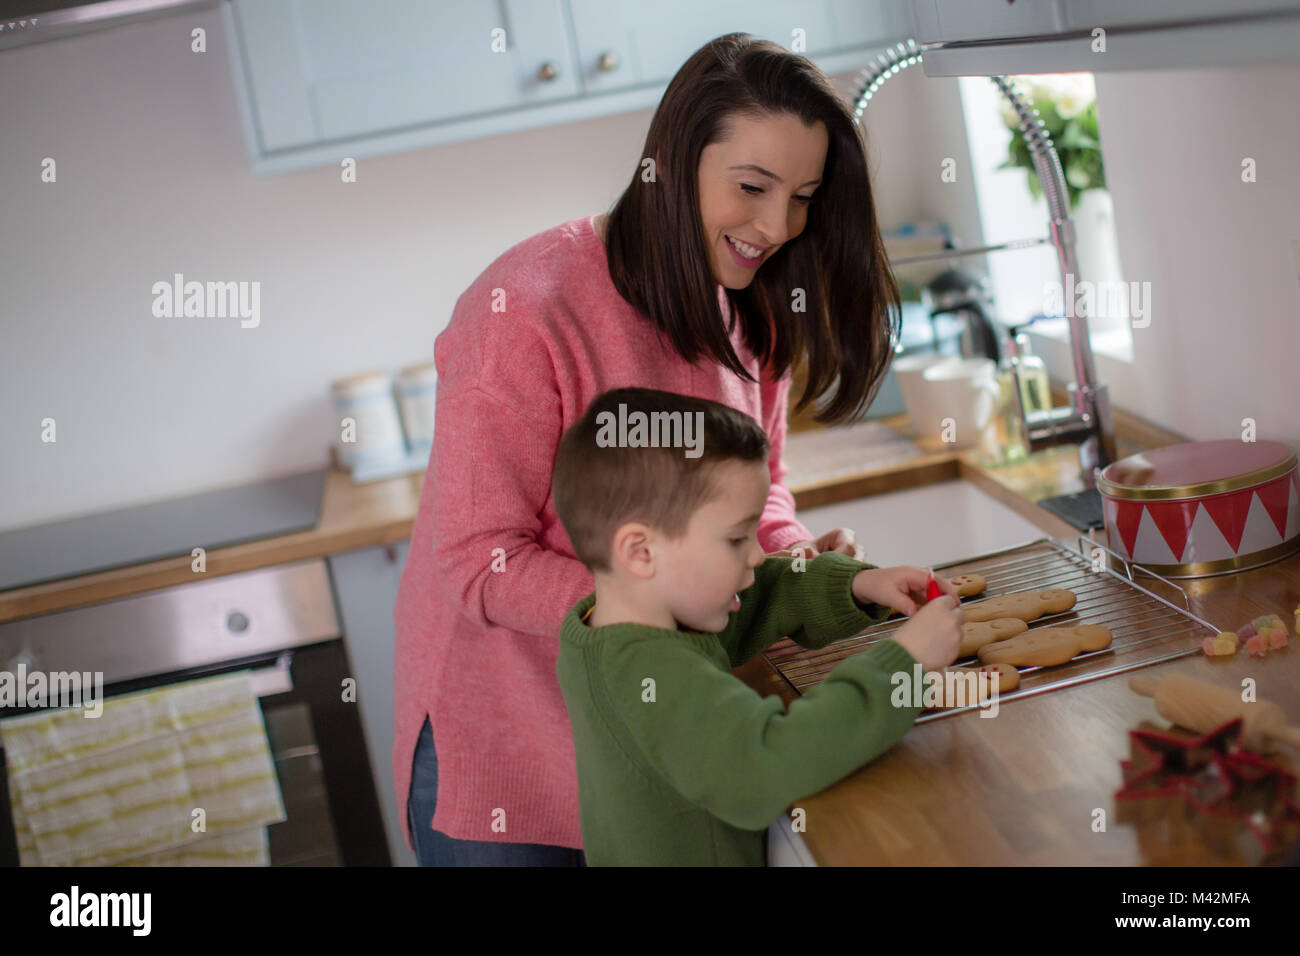 Mother and Son decorating gingerbread men - Stock Image